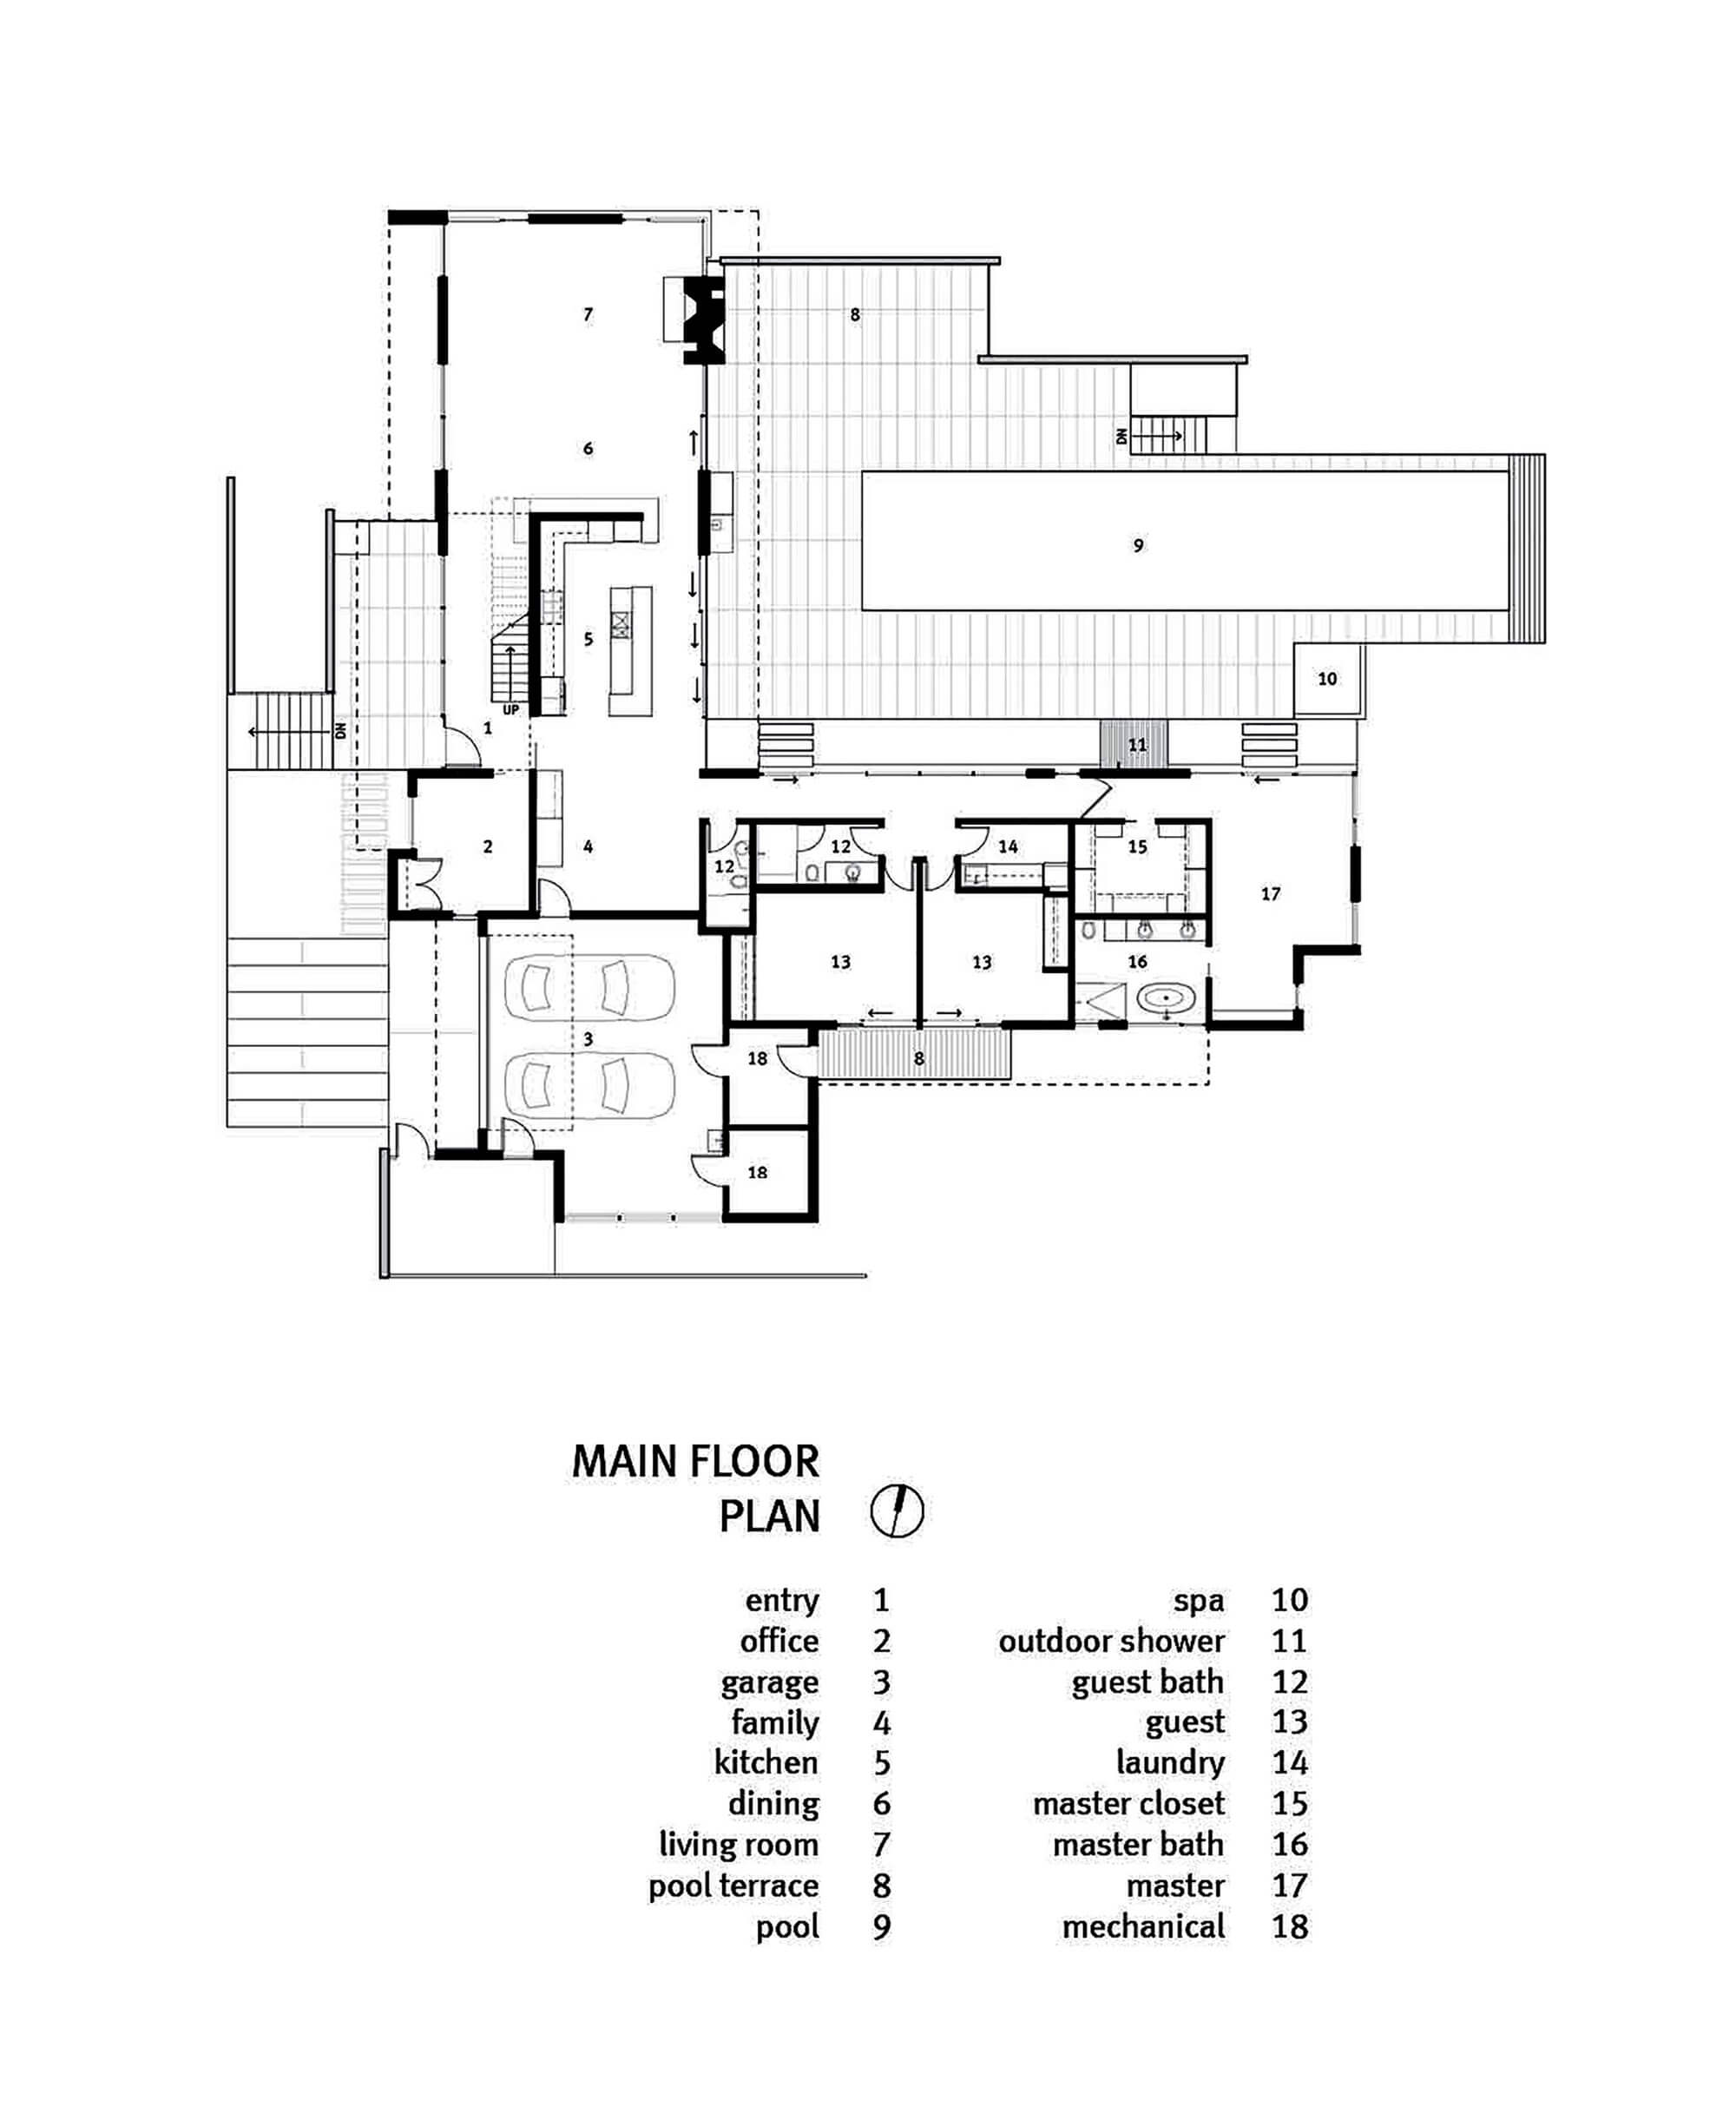 10 Modern One Story House Design Ideas - Discover the Current Trends ...